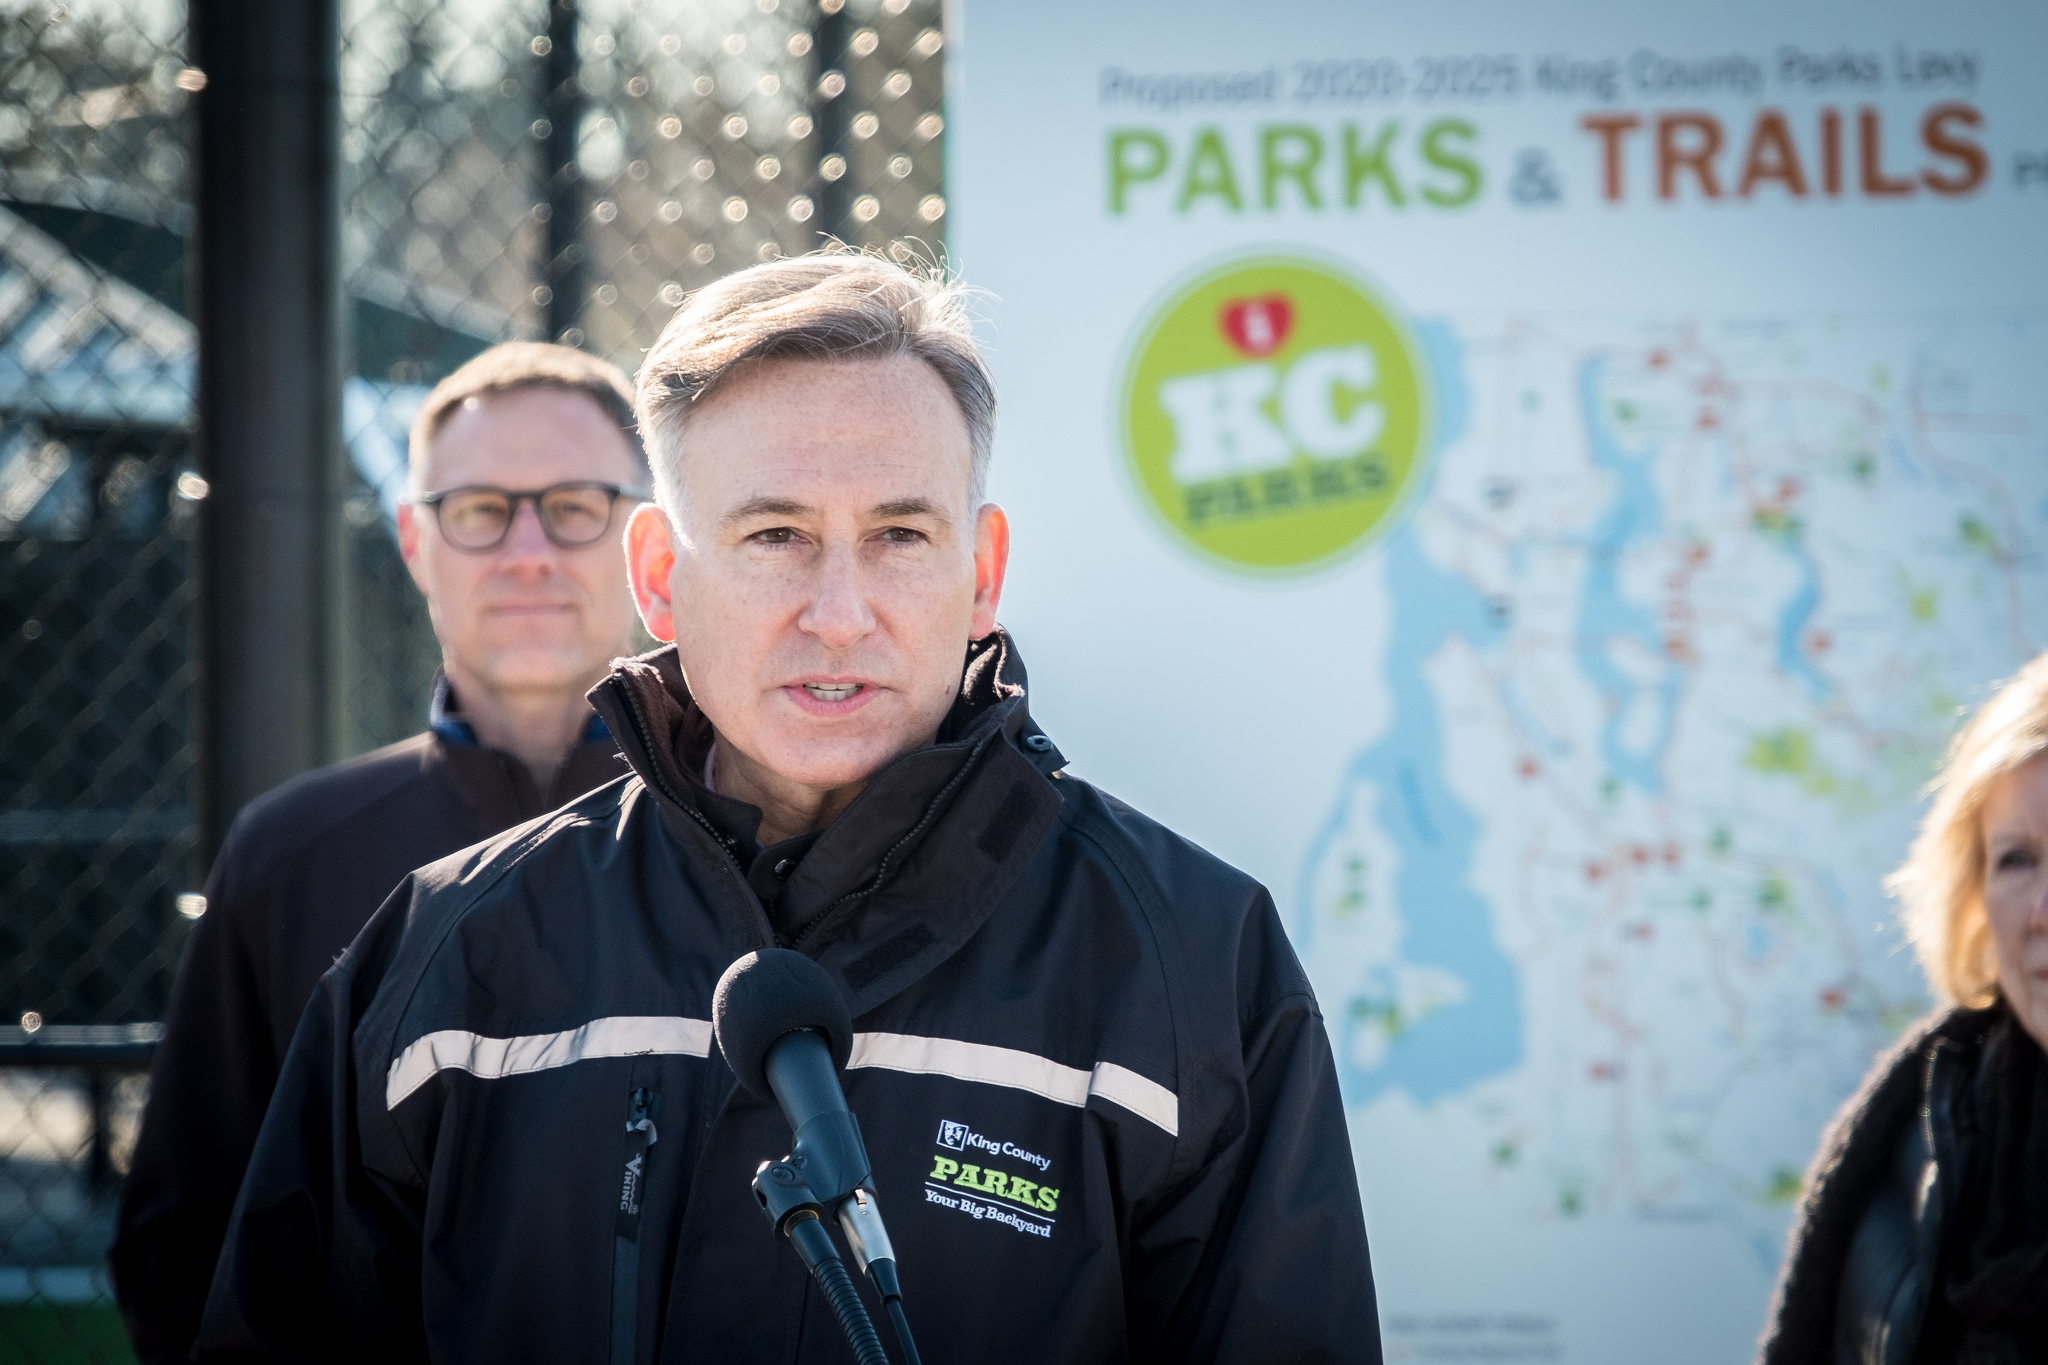 Executive Constantine announces his proposal to renew the King County Parks Levy at Steve Cox Memorial Park in White Center.